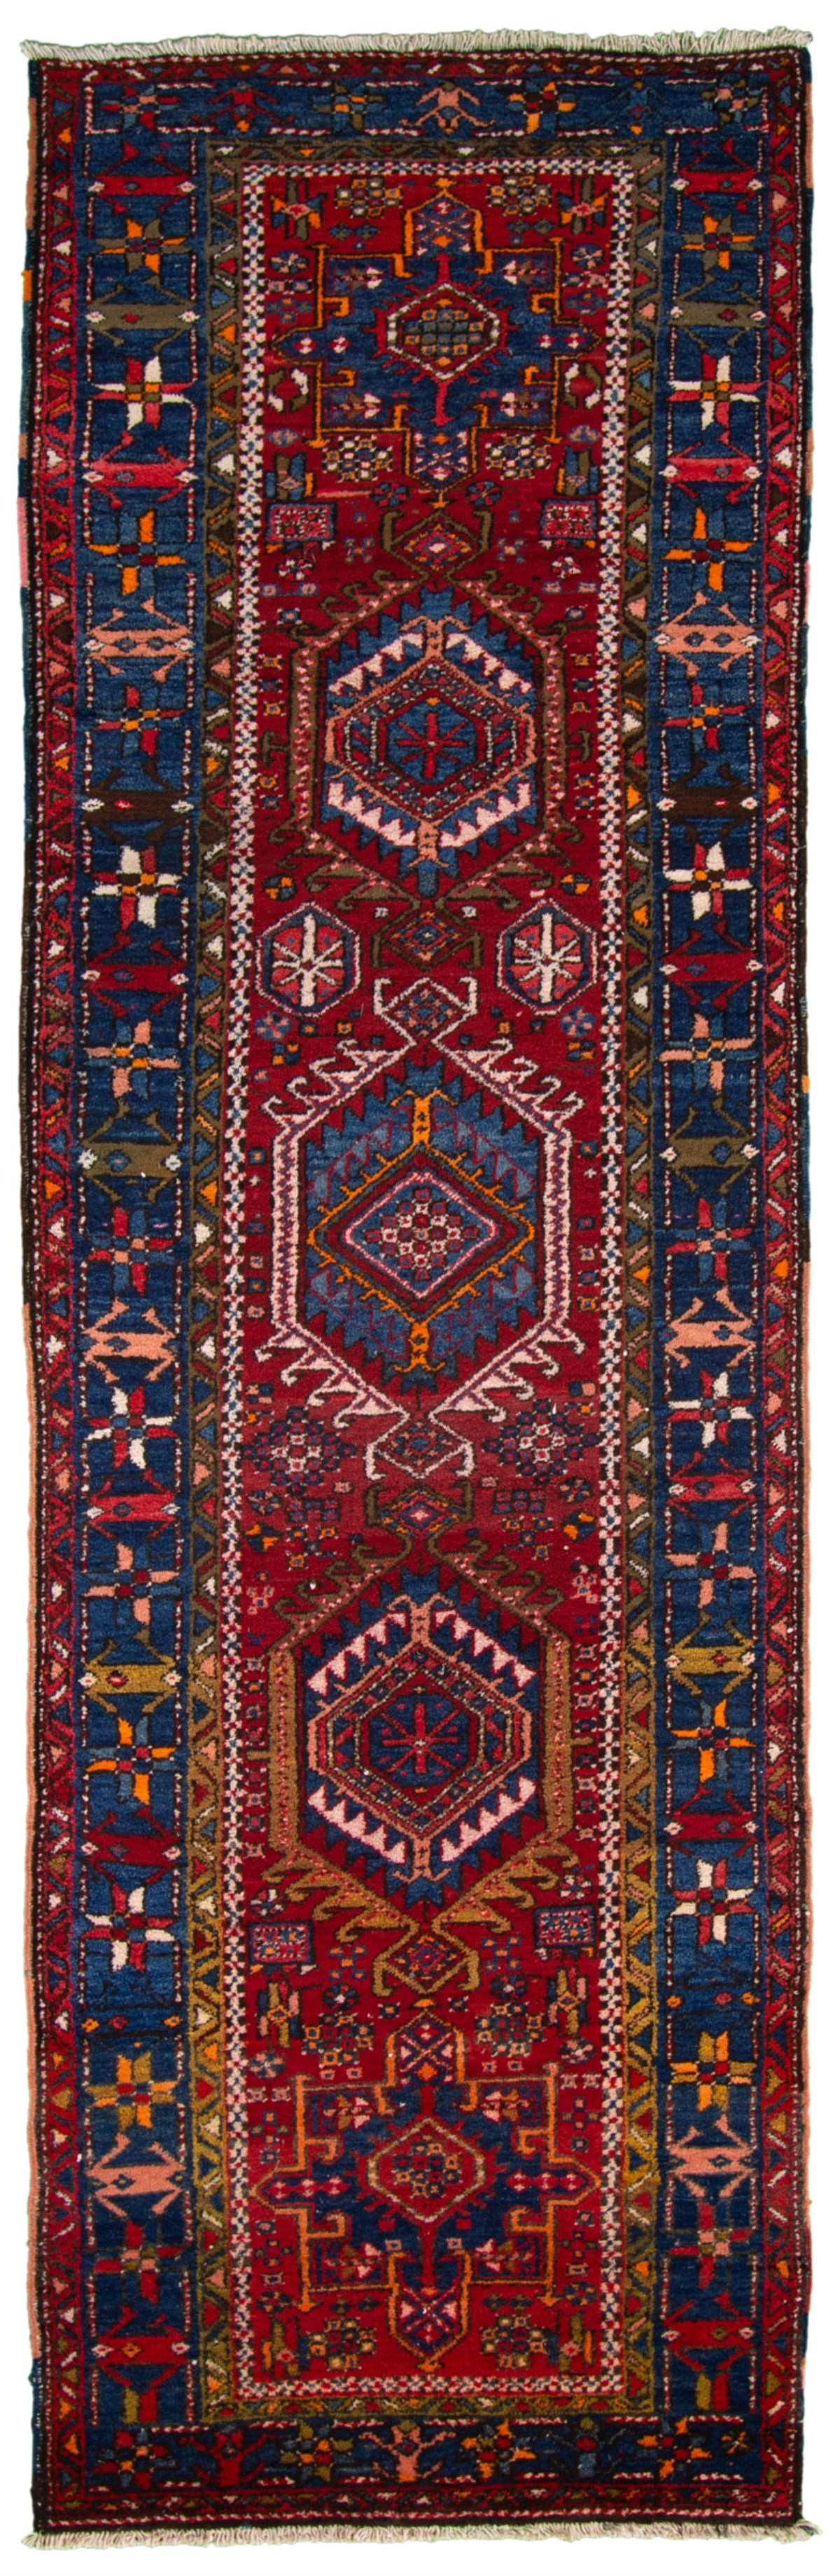 """Hand-knotted Ardabil Blue, Red Wool Rug 3'3"""" x 10'10"""" Size: 3'3"""" x 10'10"""""""